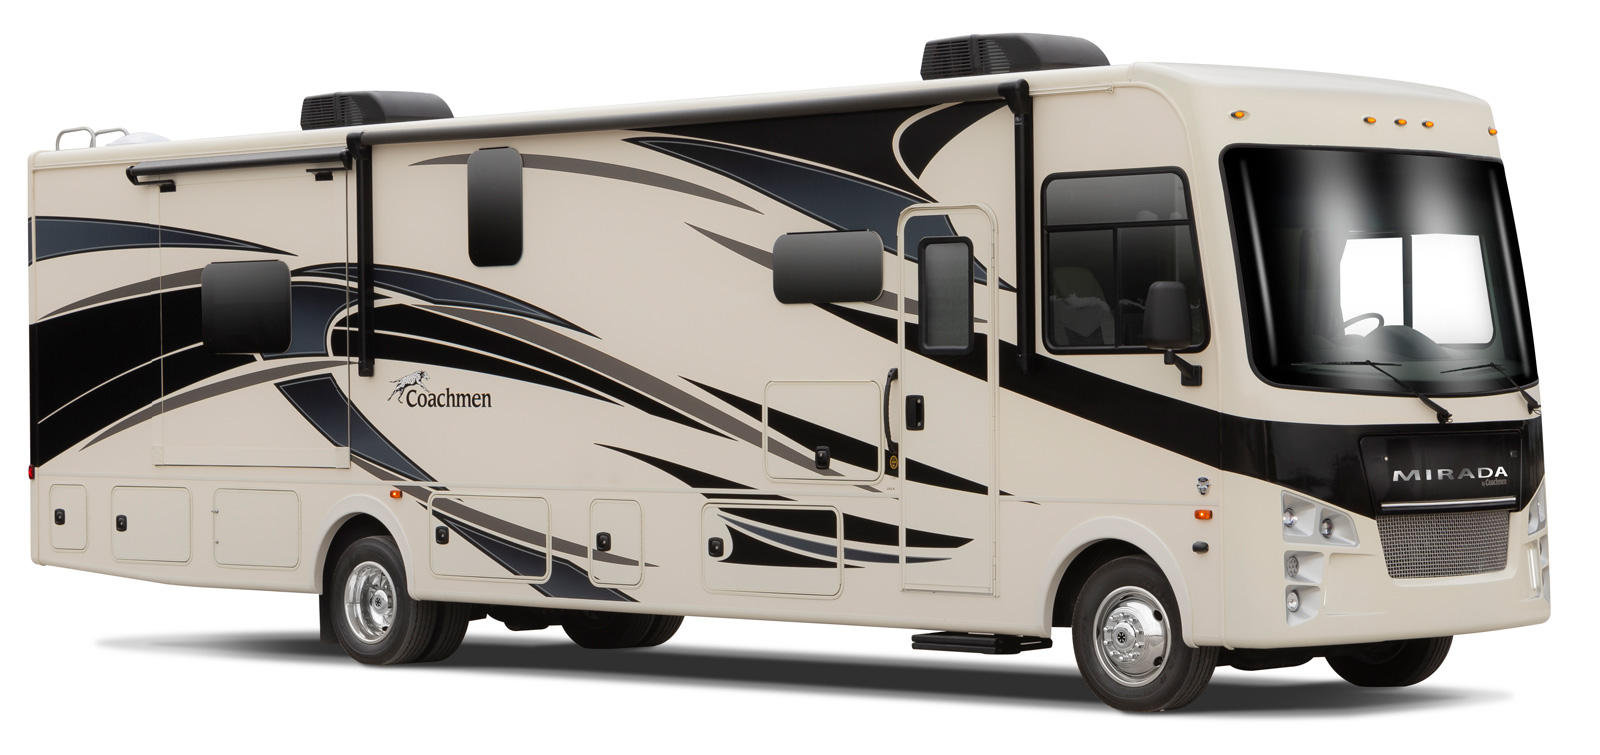 Mirada by Coachmen RV